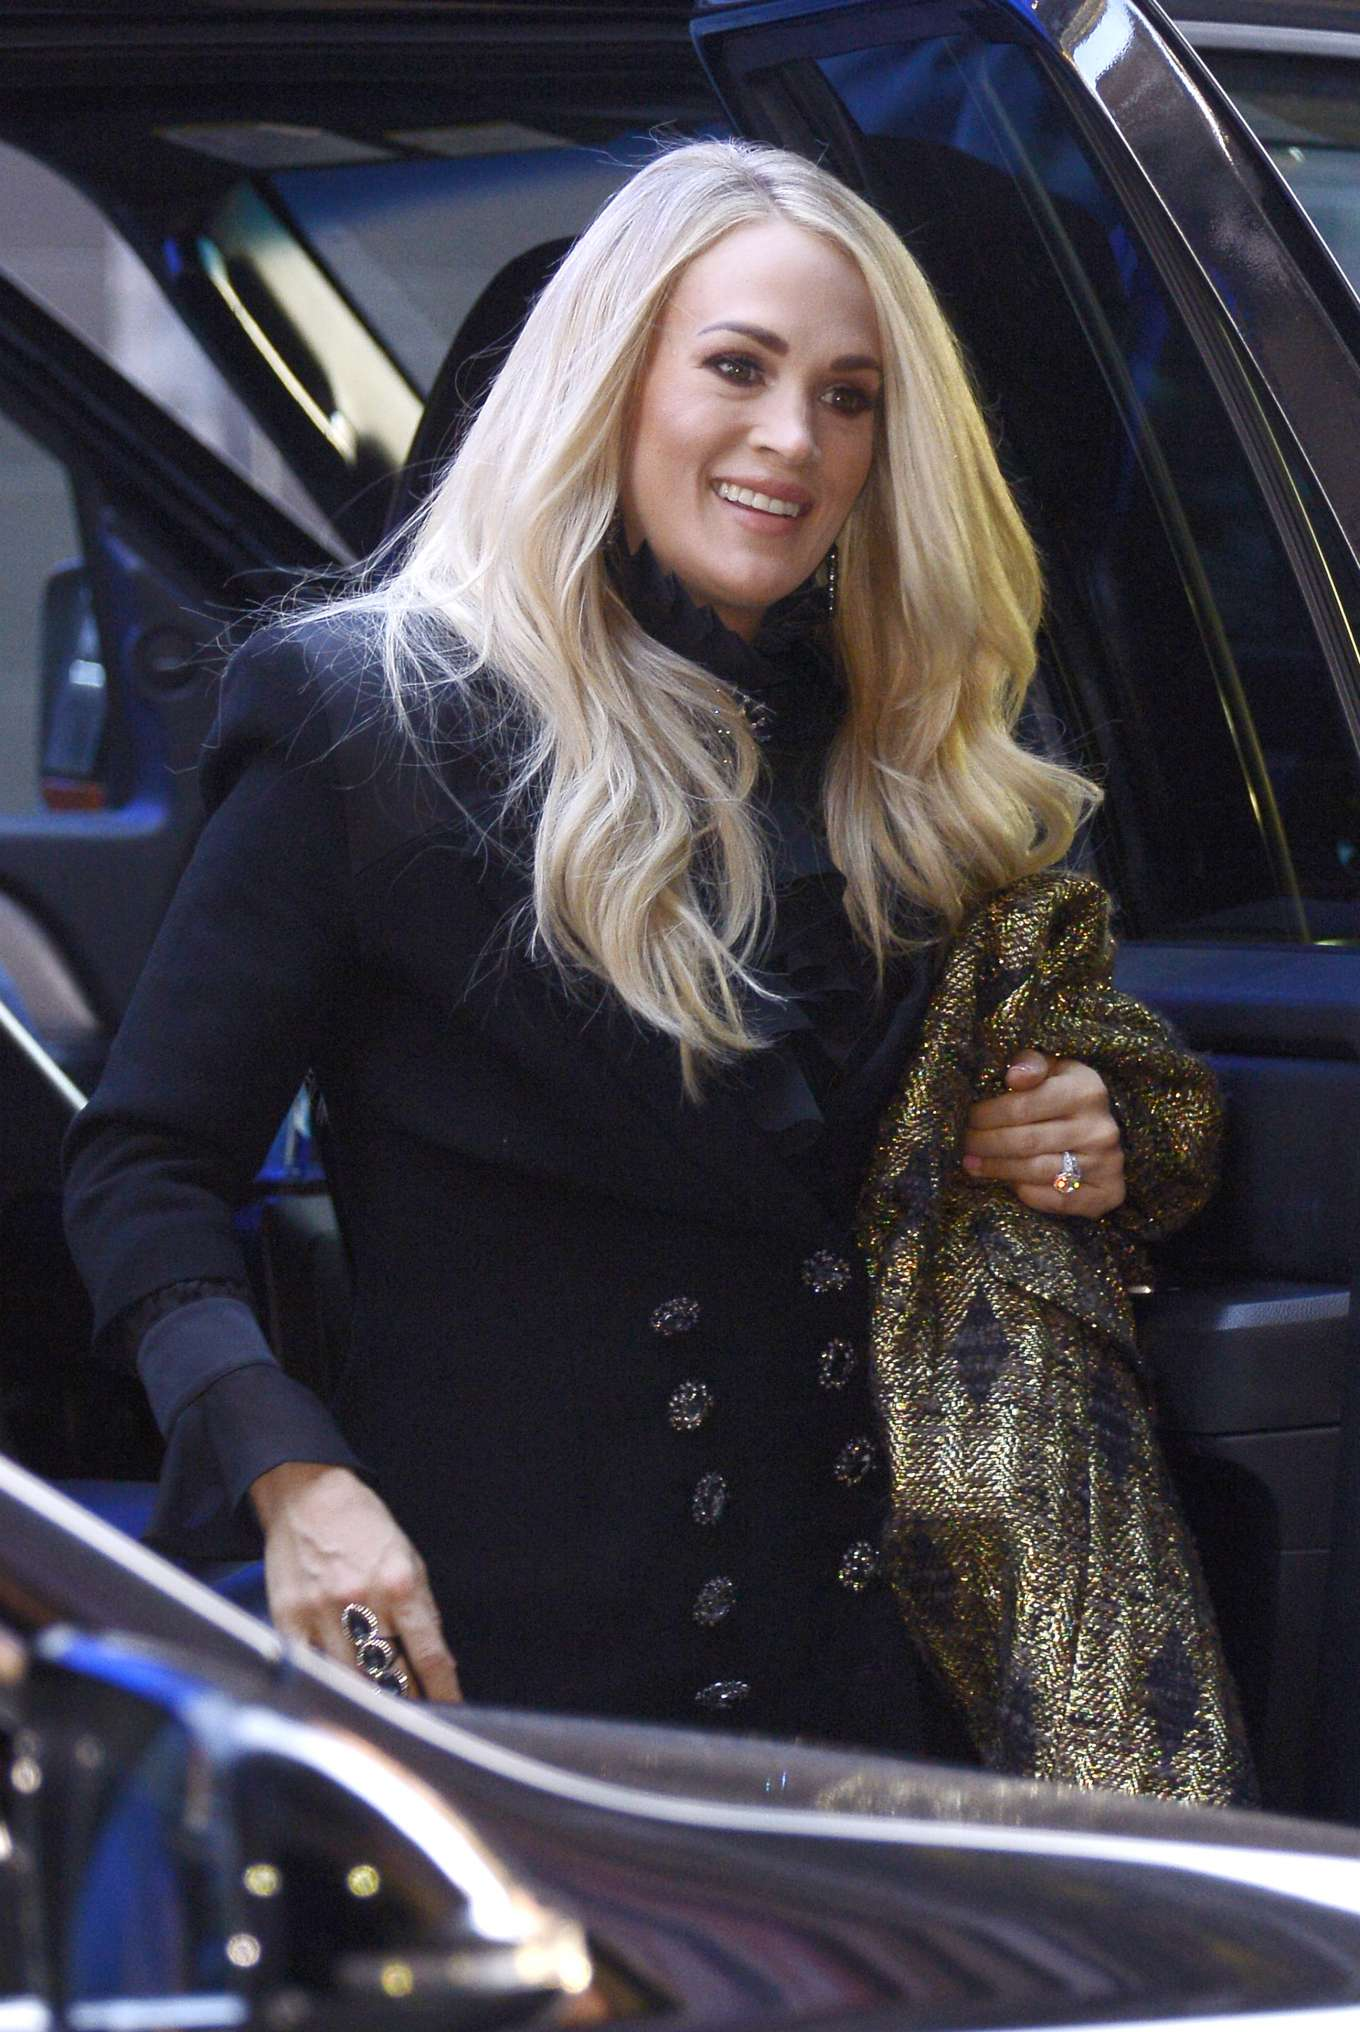 Carrie Underwood 2019 : Carrie Underwood – Arrives at Good Morning America Show-01